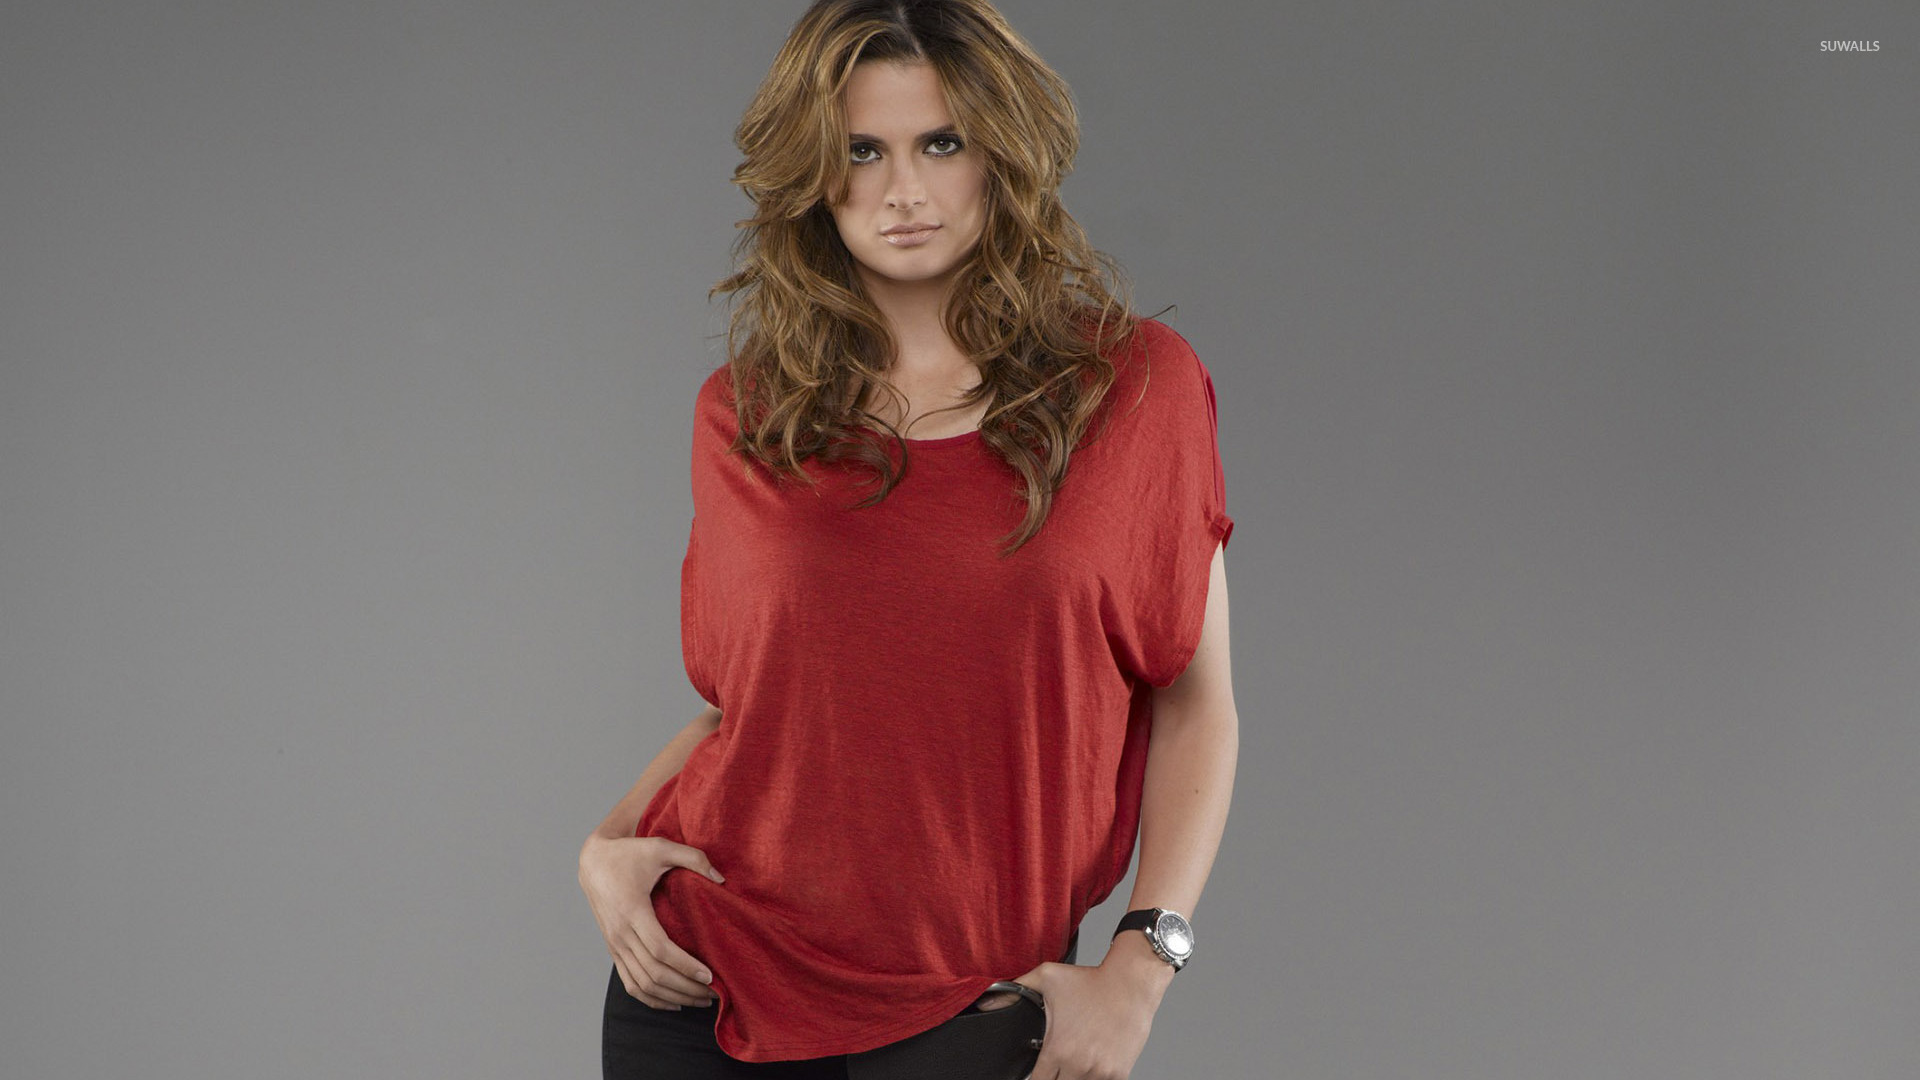 stana katic actress wallpaper - photo #22